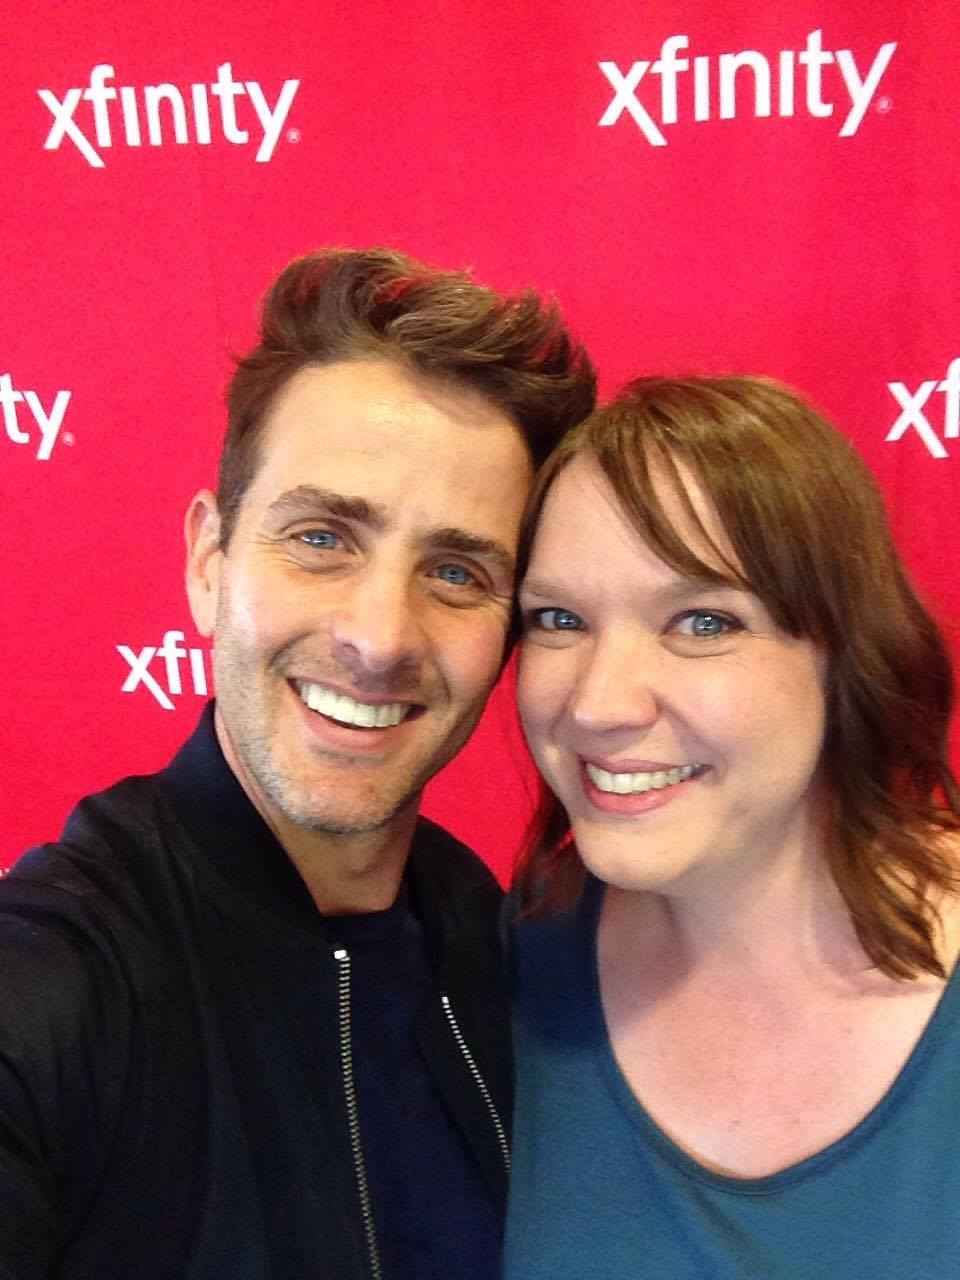 Kerrie and Joey McIntyre from New Kids on the Block